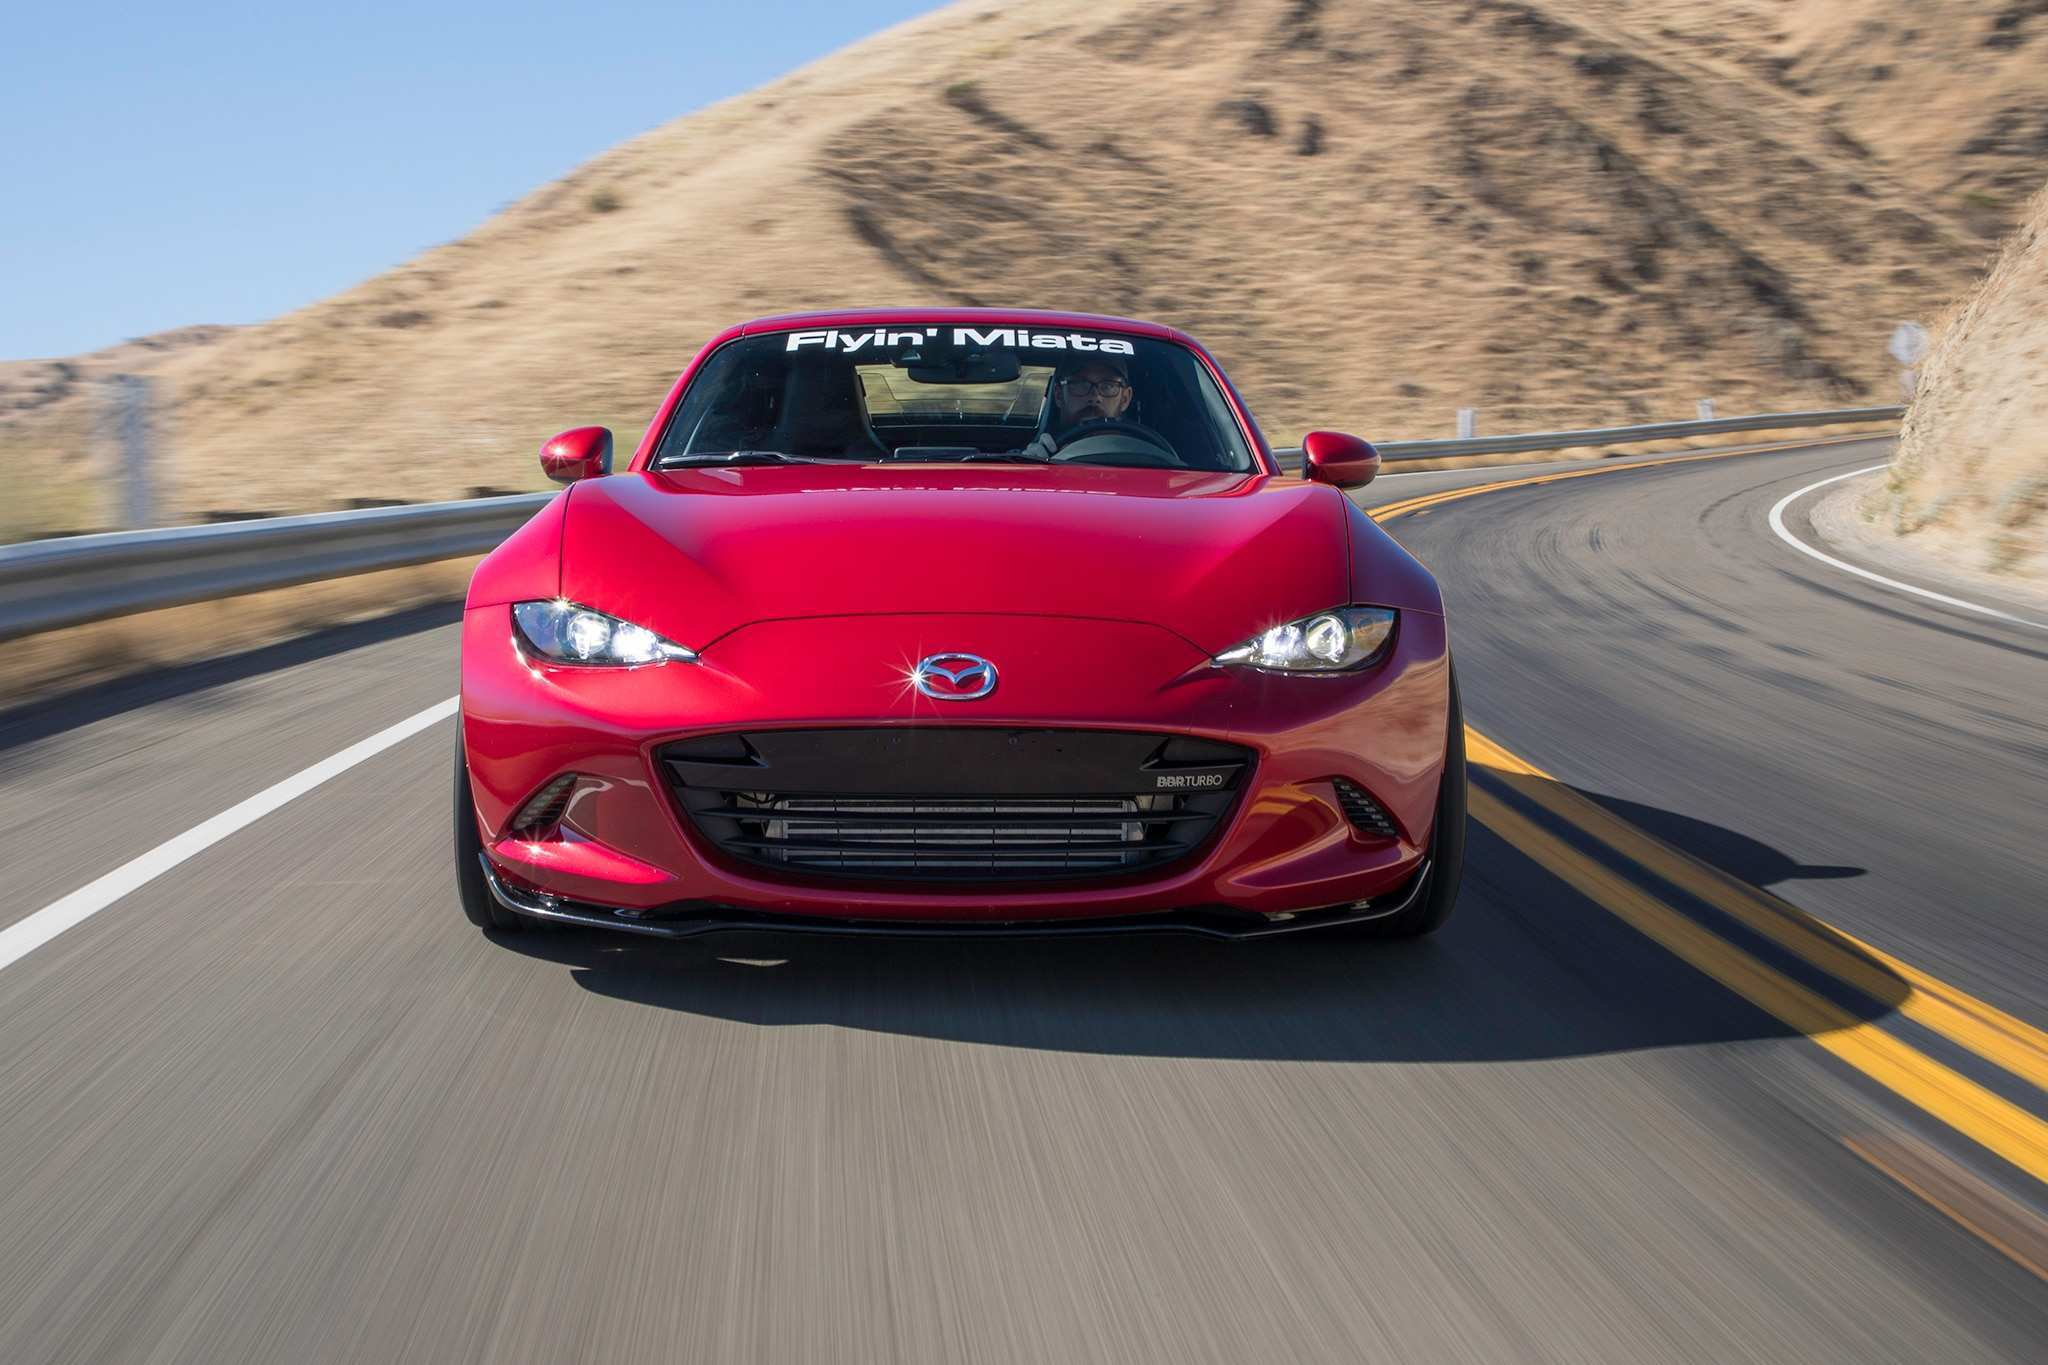 38 The Best 2020 Mazda Miata Turbo Interior